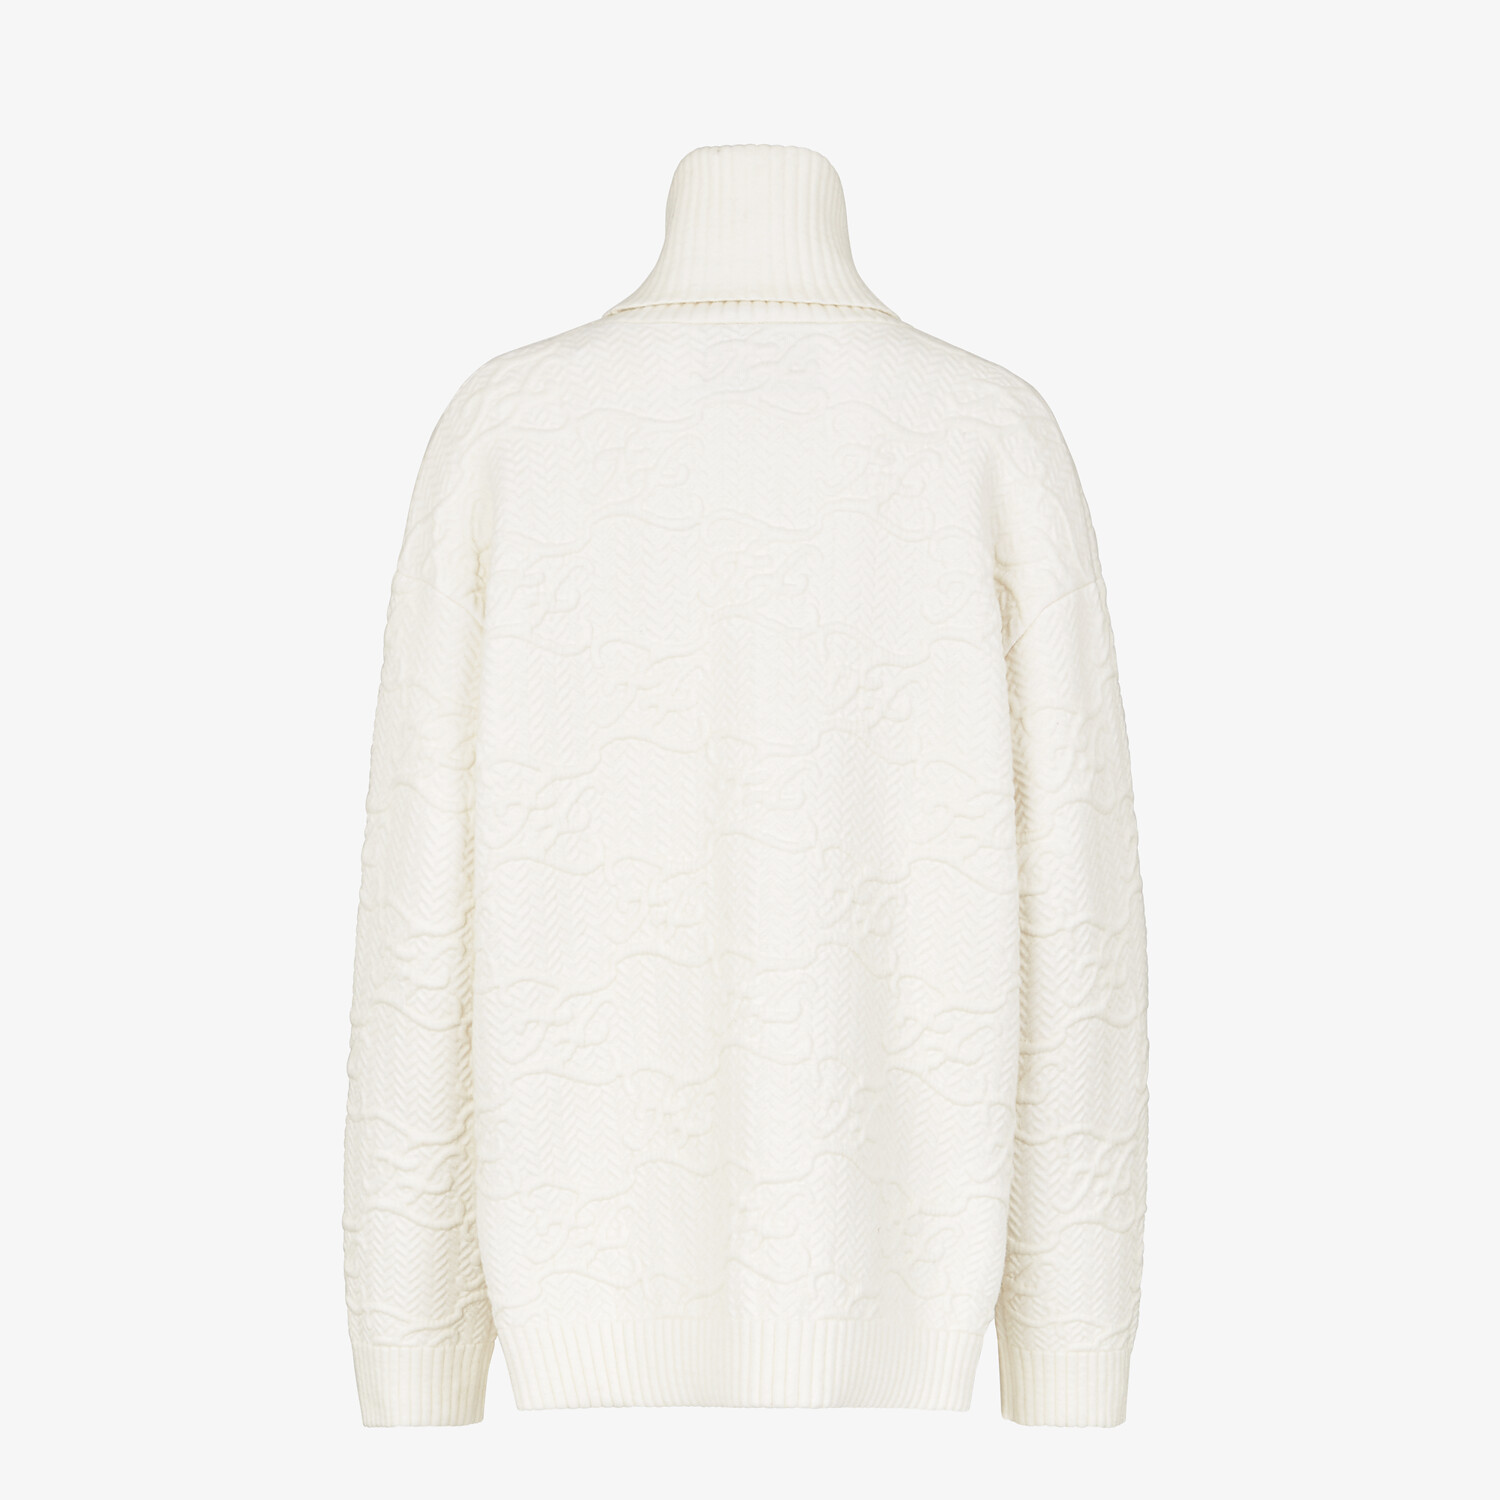 FENDI SWEATER - White wool and cashmere sweater - view 2 detail